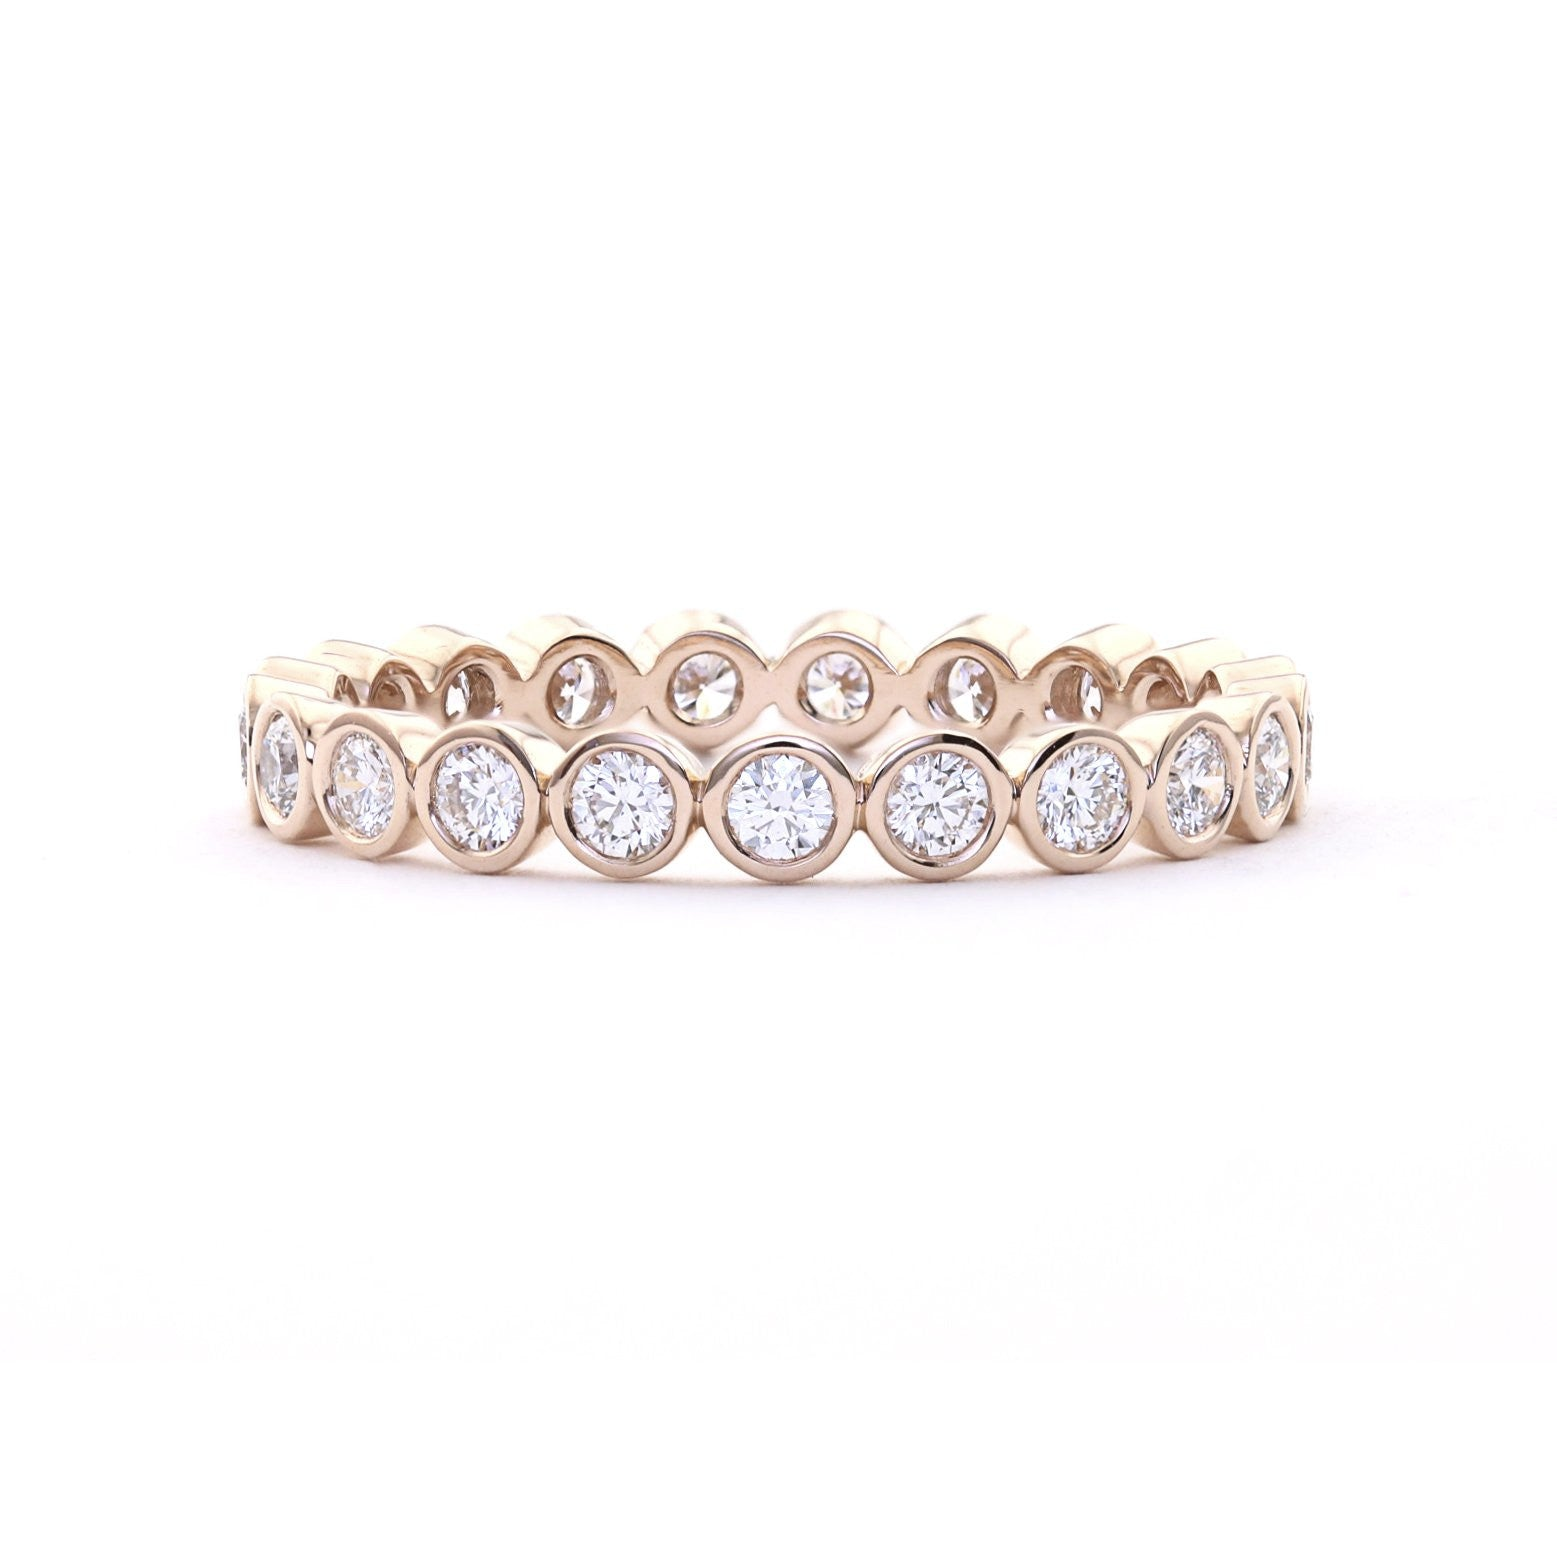 cut karat pav company diamond products band only jackson french hole jewelry eternity bands